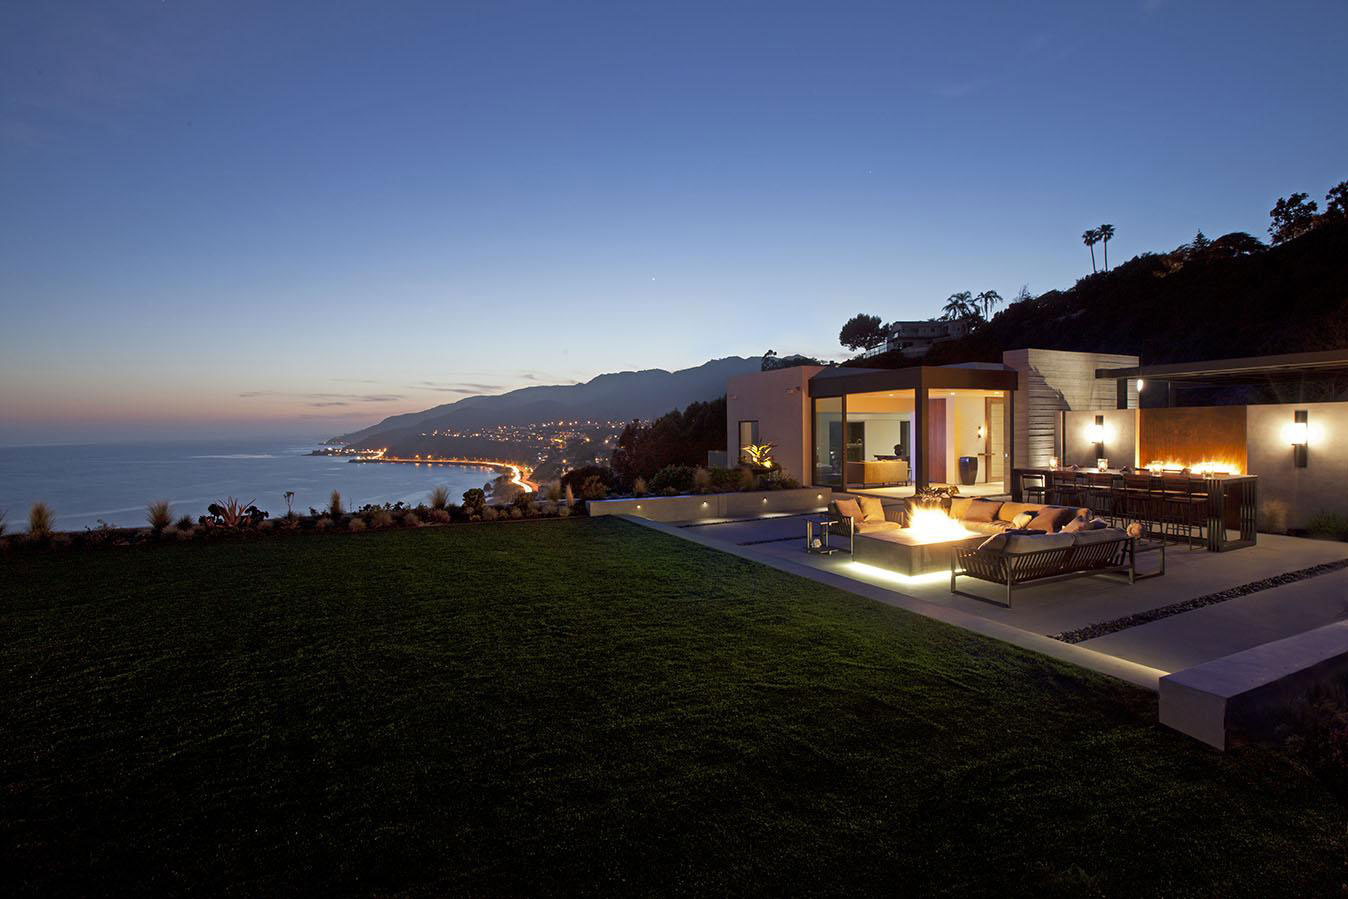 Firepit, Lighting, Evening, Ocean Views, House in Pacific Palisades, Los Angeles